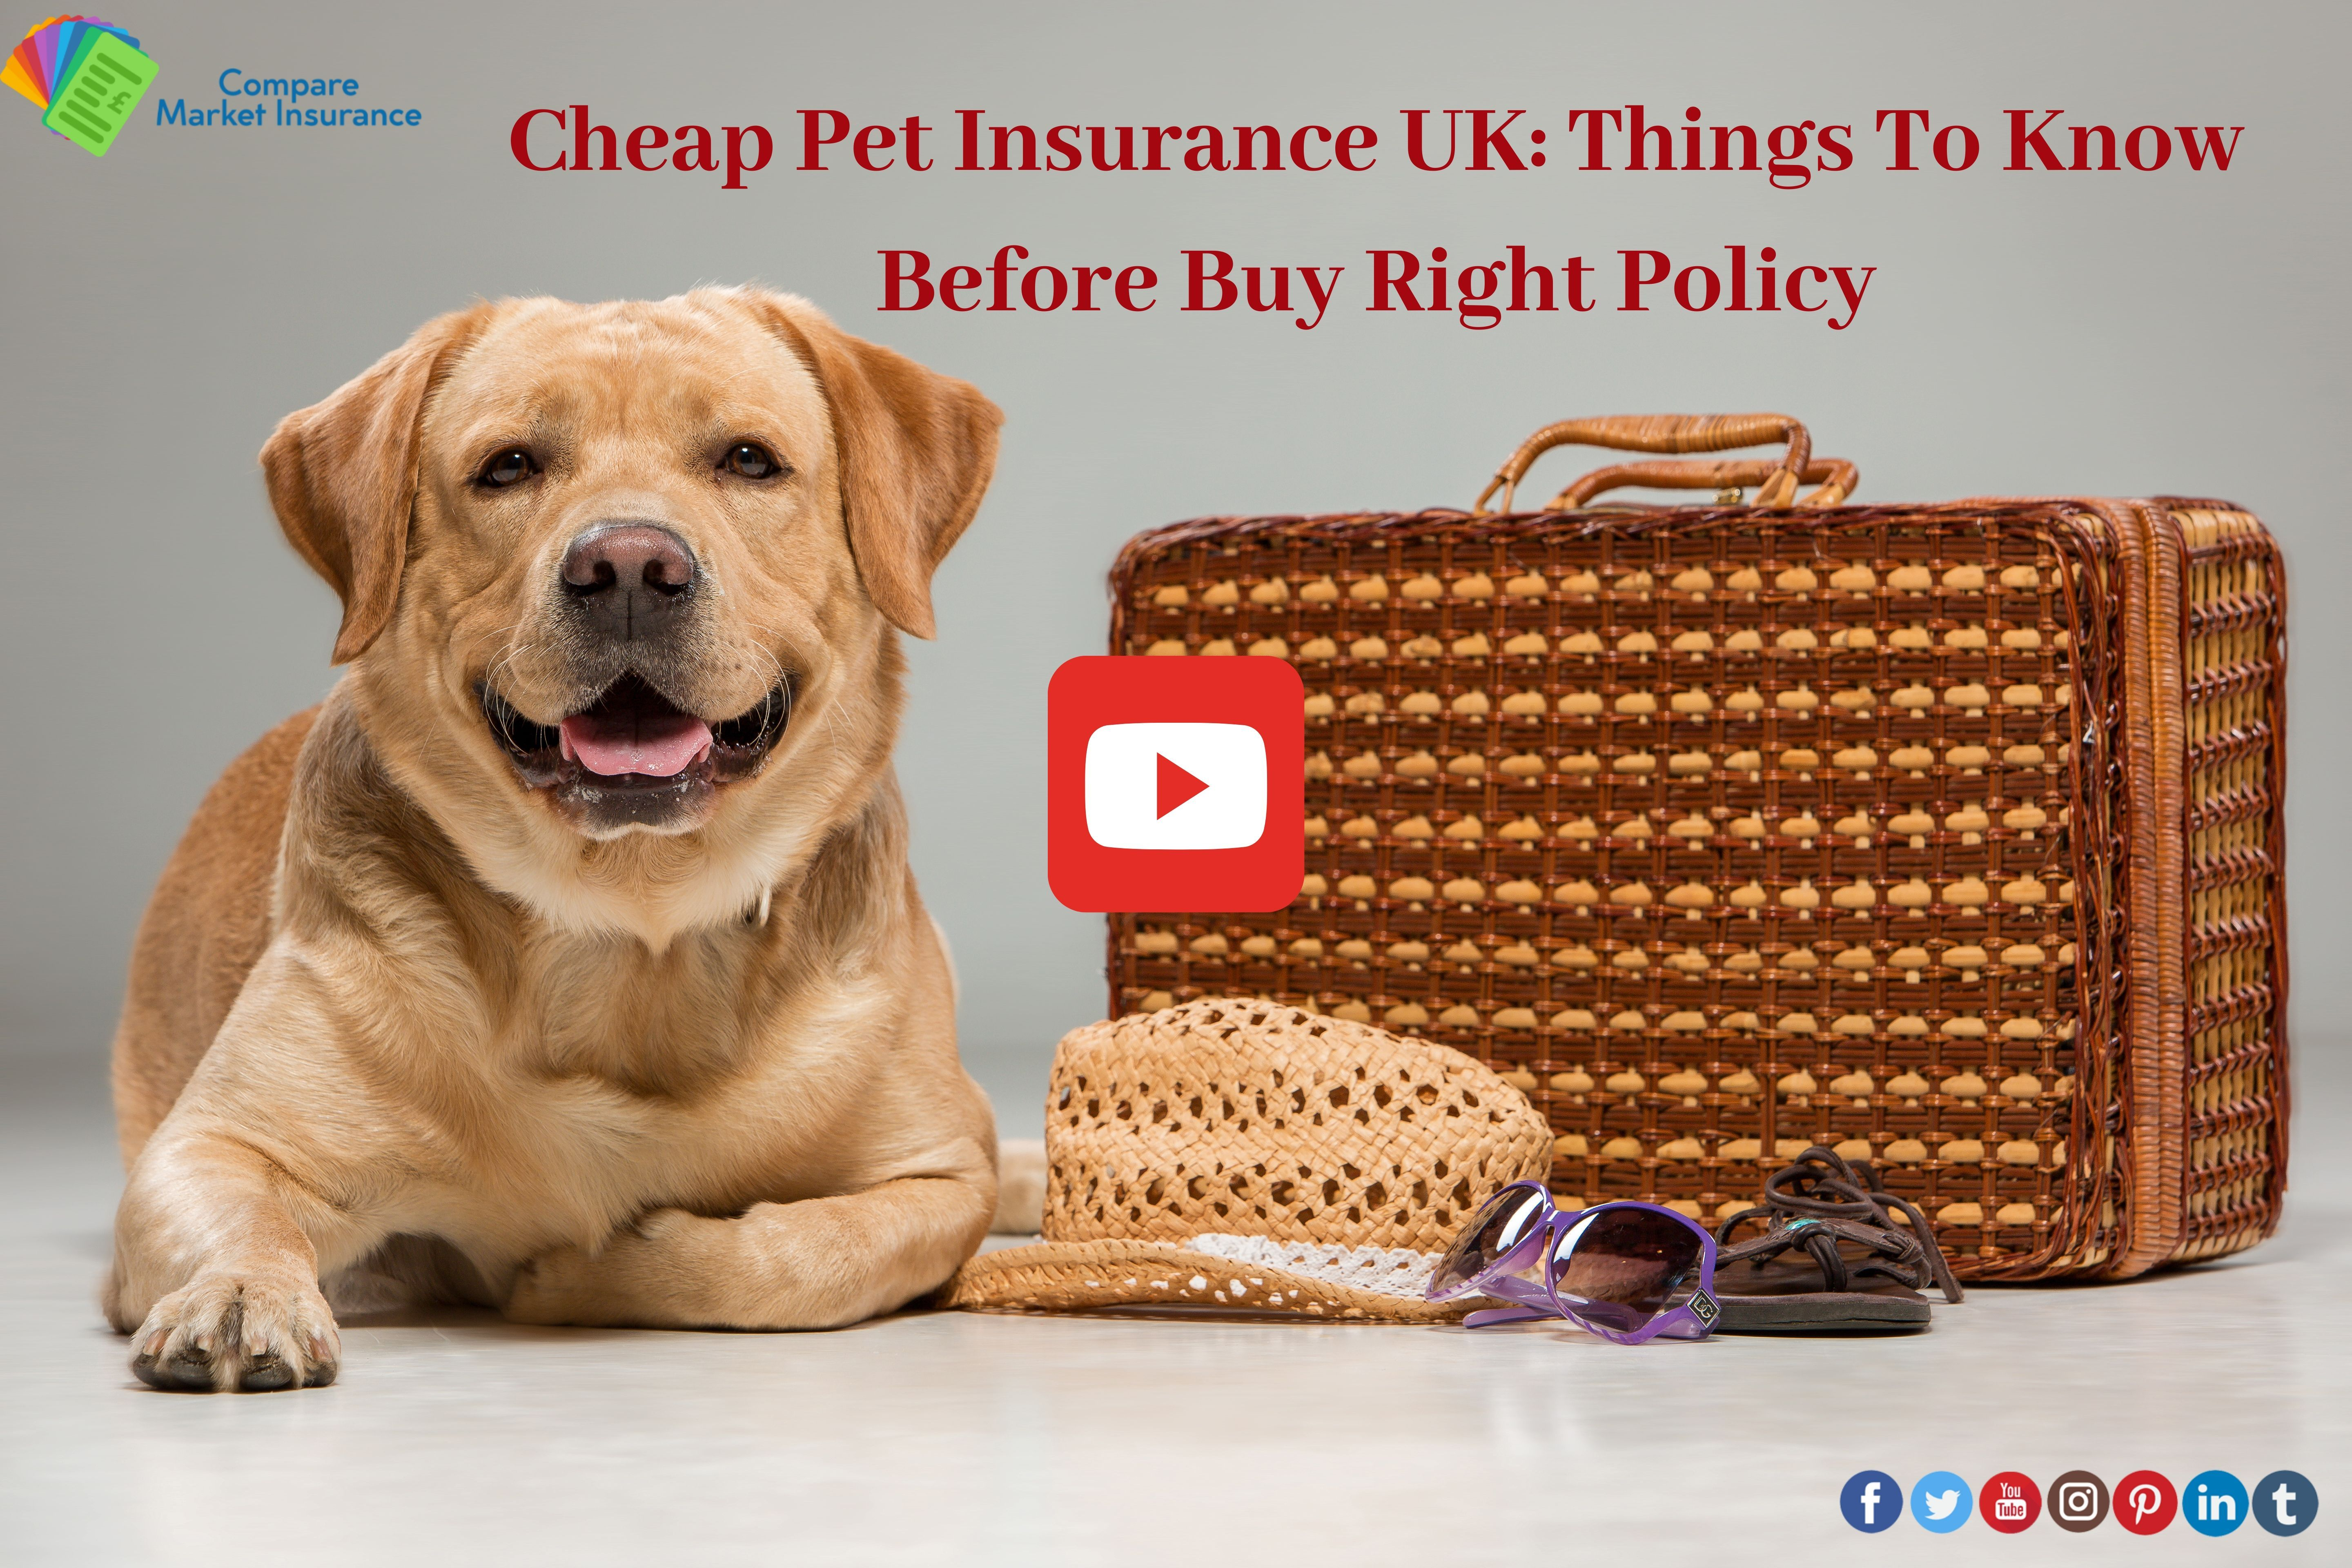 Buy The Insurance Which Is Right For Your Pet And At The Right Deal Comparemarketinsurance Insura In 2020 Compare Insurance Cheap Pet Insurance Cheap Pets